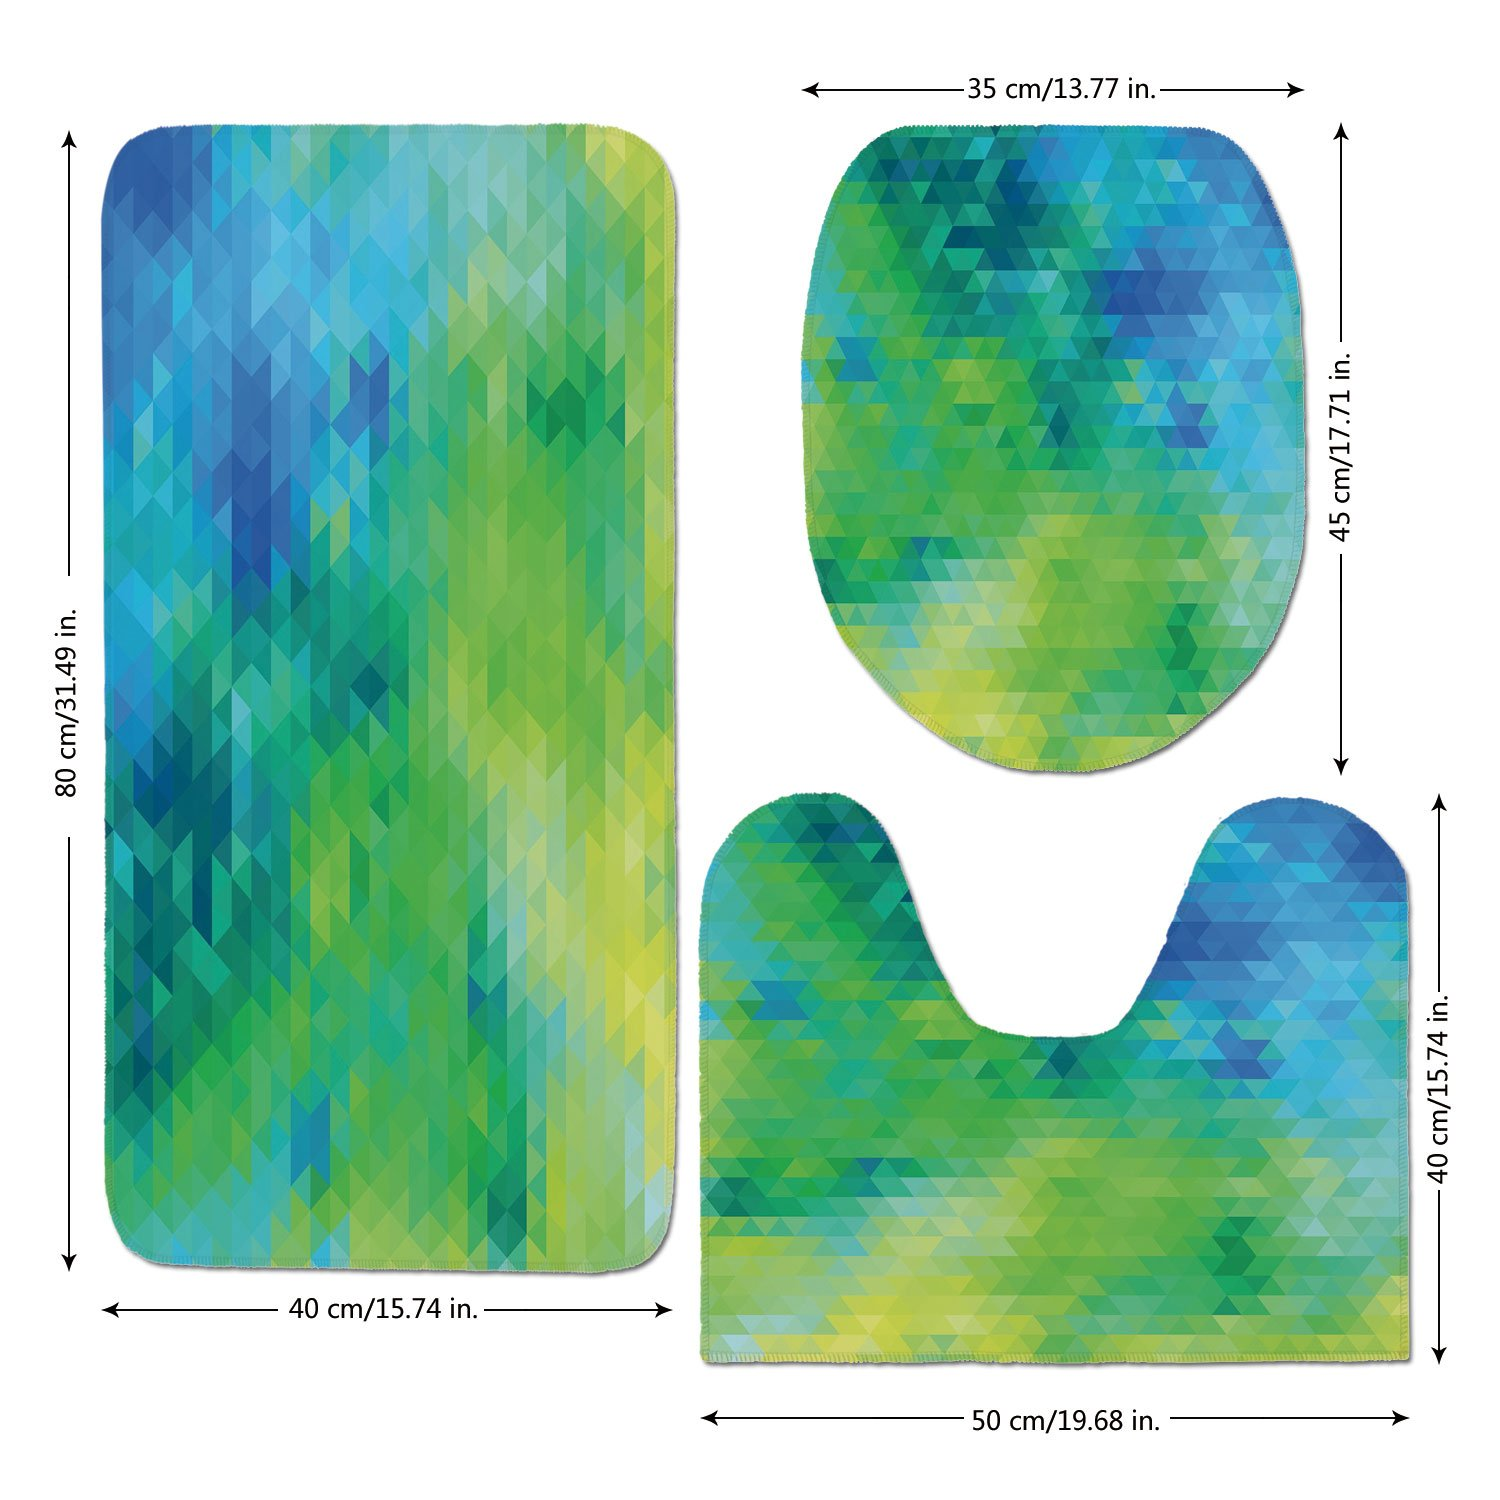 3 Piece Bathroom Mat Set,Yellow and Blue,Geometric Abstract Pattern with Triangles Ombre Inspired Decorative,Turquoise Lime Green Yellow,Bath Mat,Bathroom Carpet Rug,Non-Slip